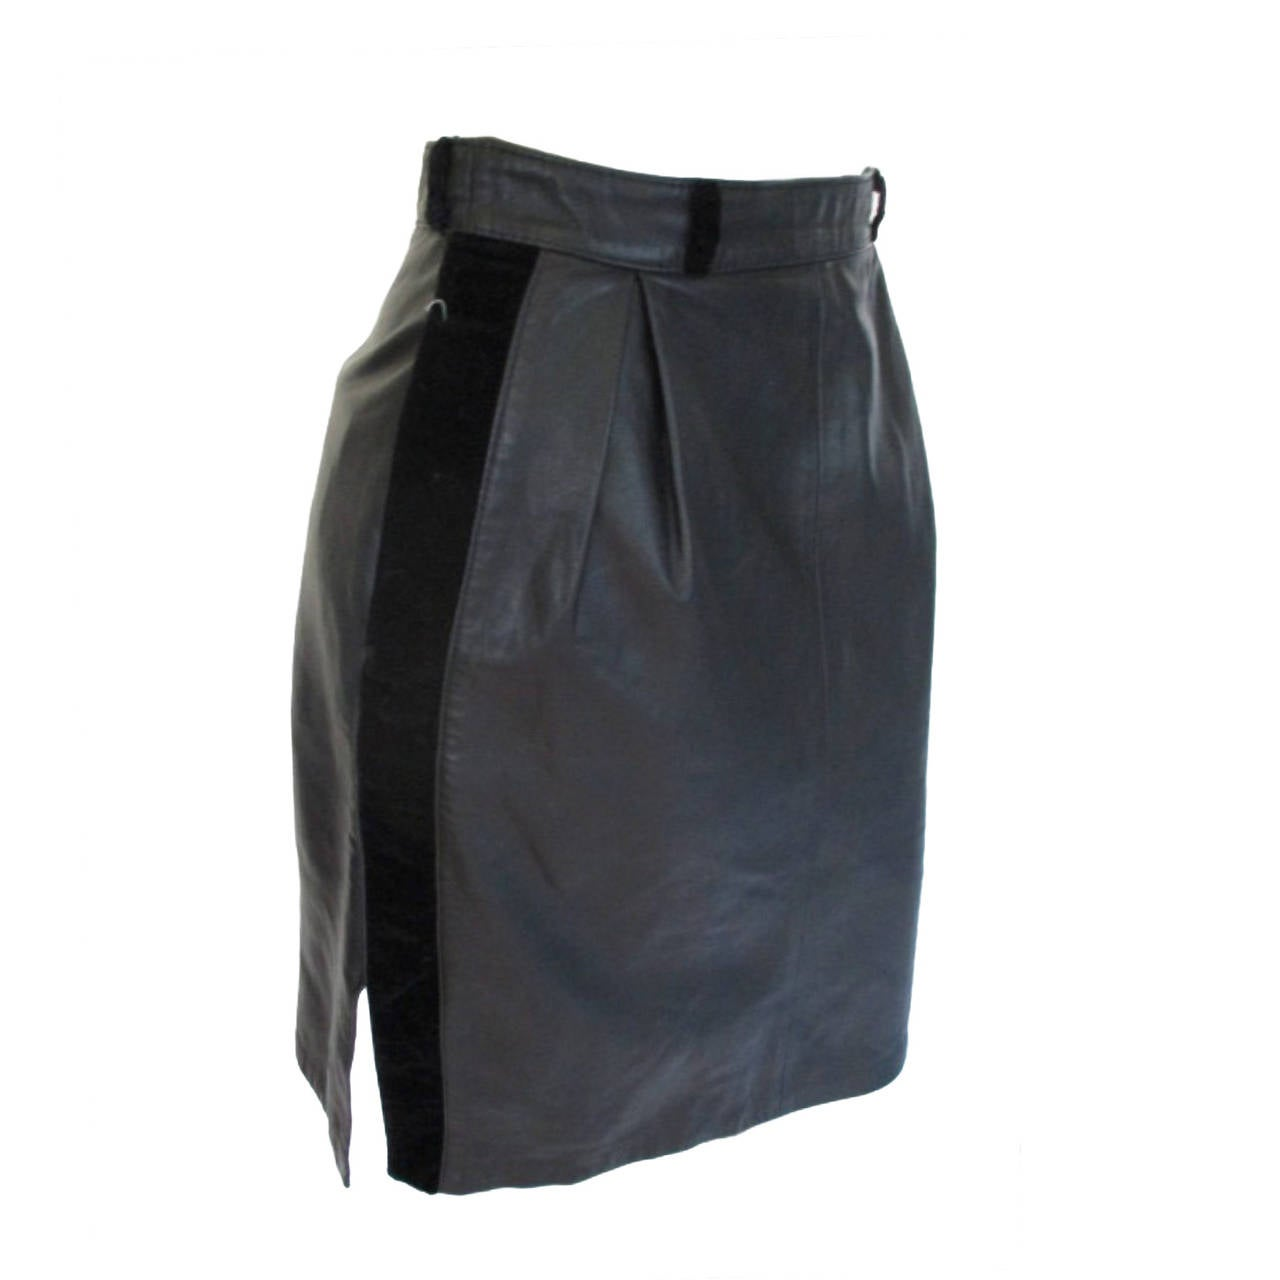 Valentino black leather skirt with velvet trim